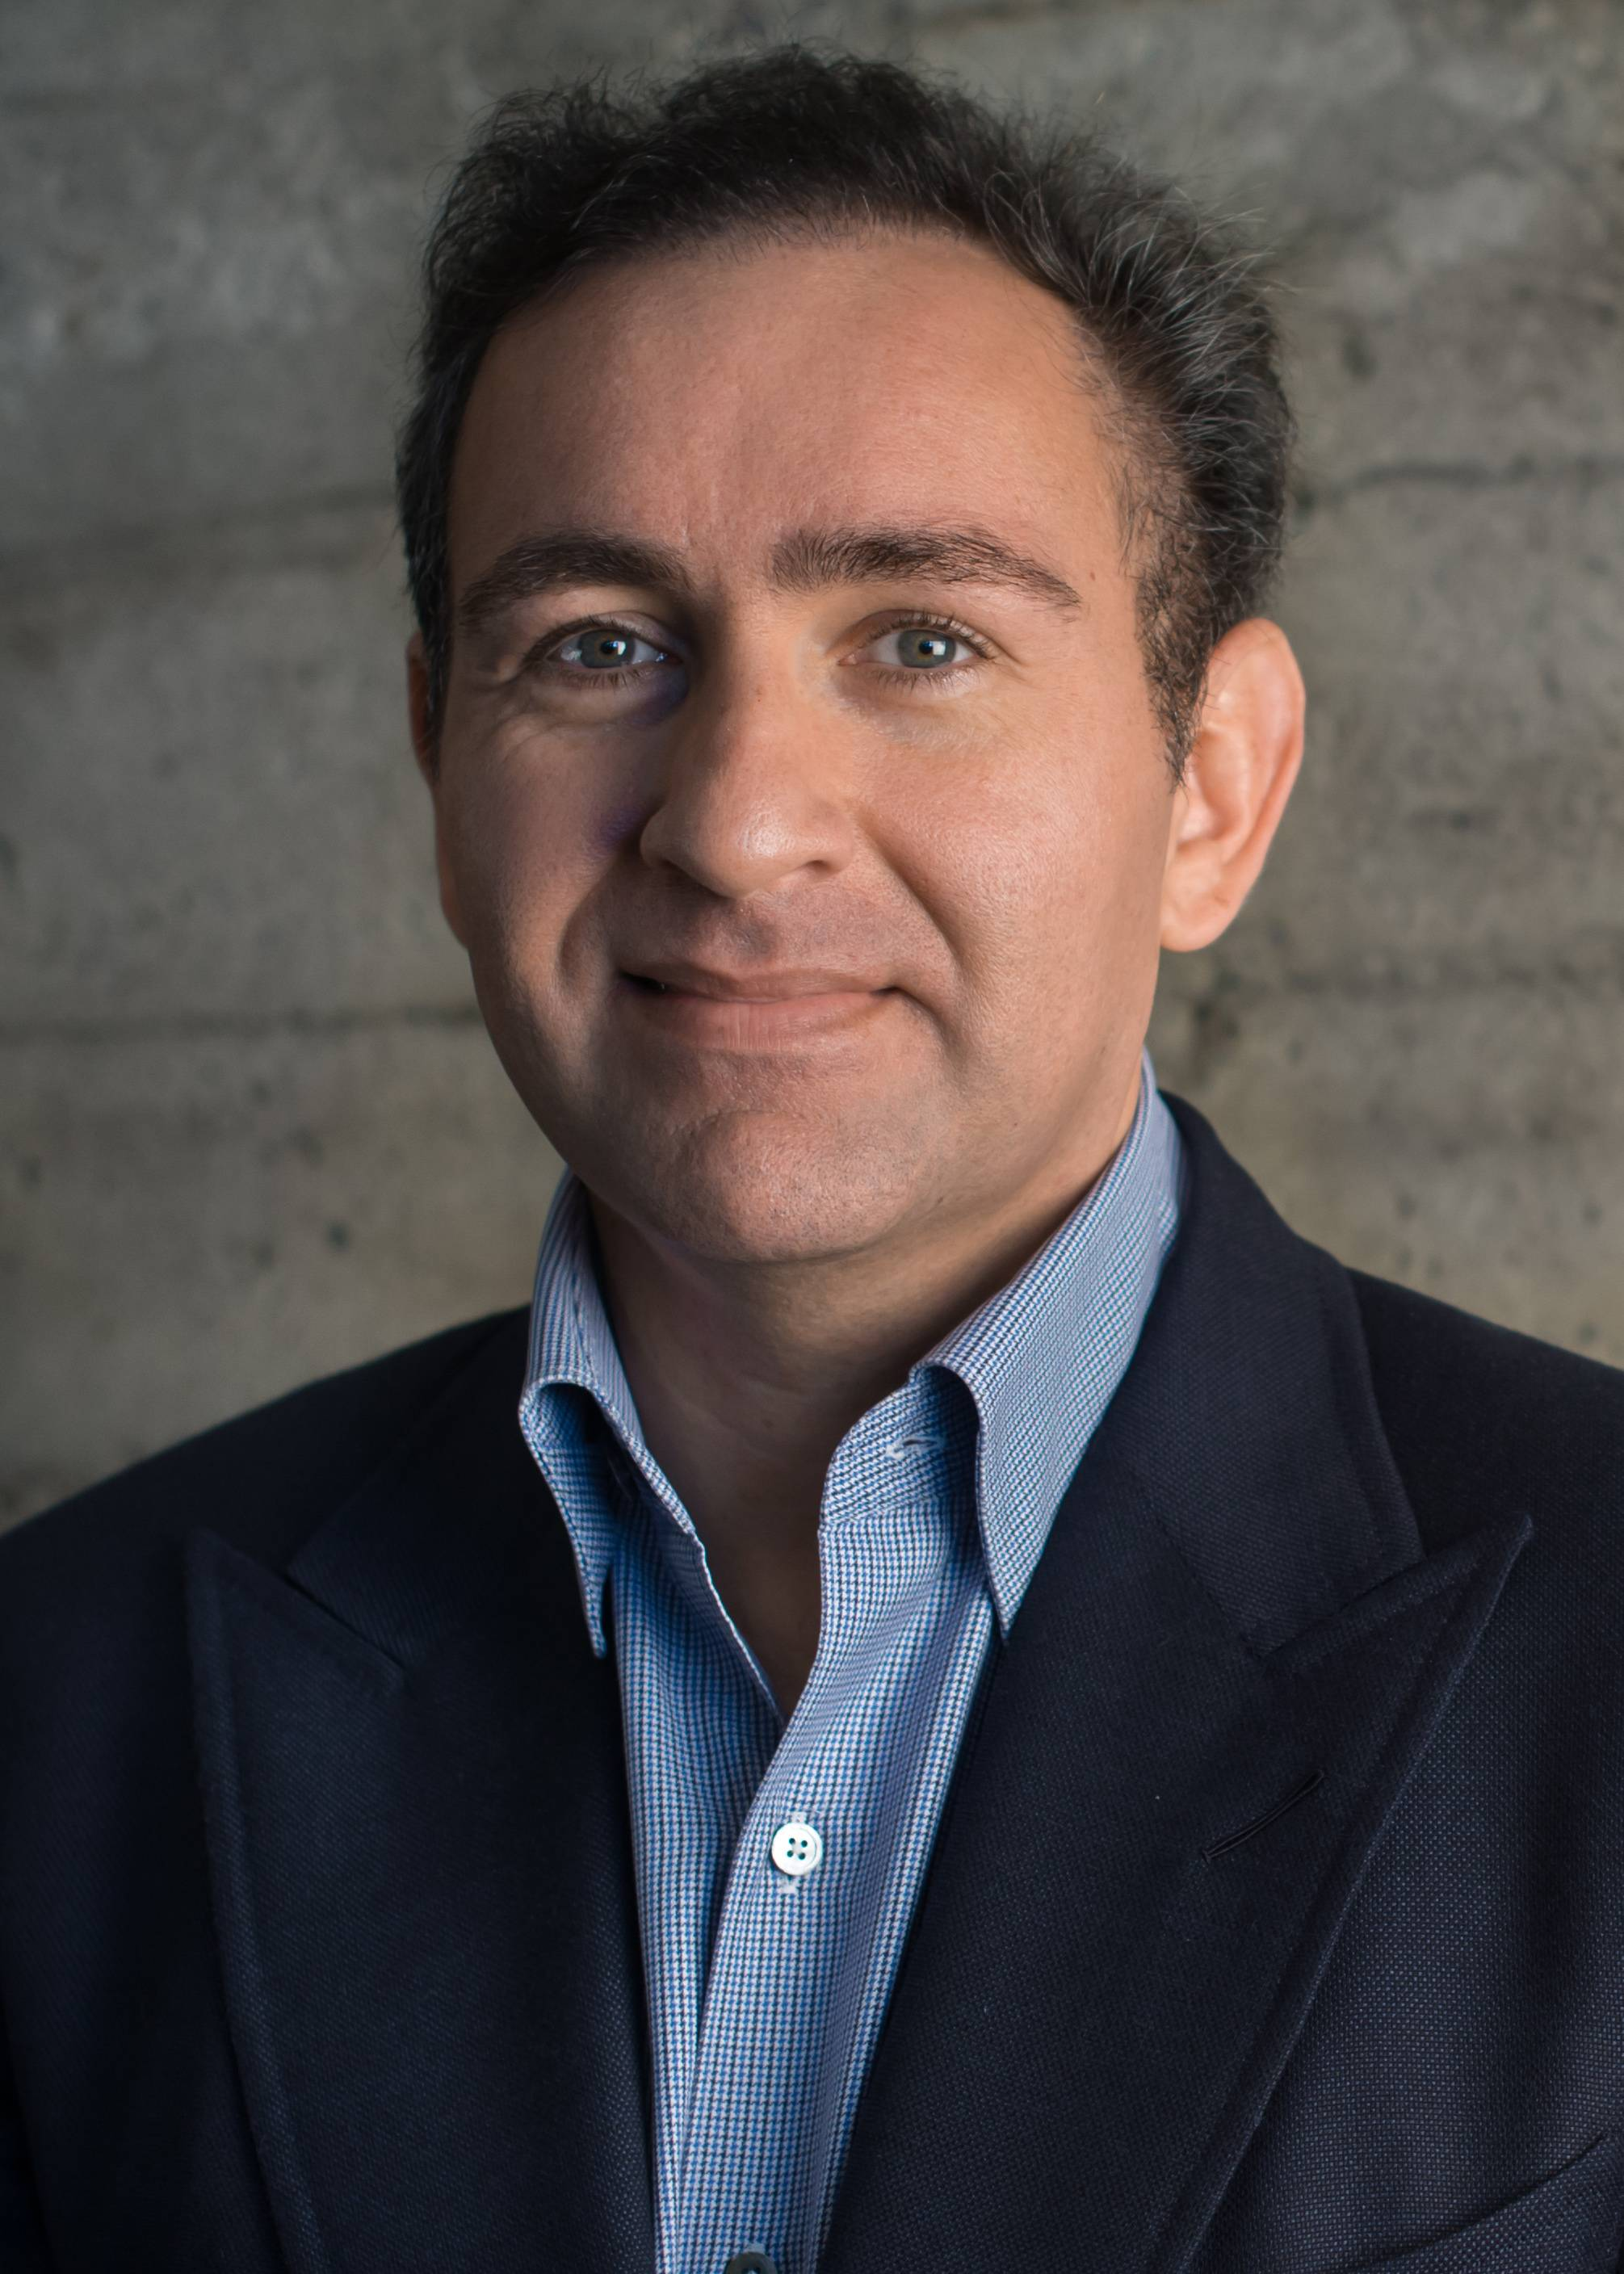 This undated photo provided by Twitter shows Chief Operating Officer Ali Rowghani. Twitter on Tuesday, June 12, 2014 announced that Rowghani has resigned from his post and won't be replaced as CEO Dick Costolo seeks more direct involvement with the company's engineering and product teams.